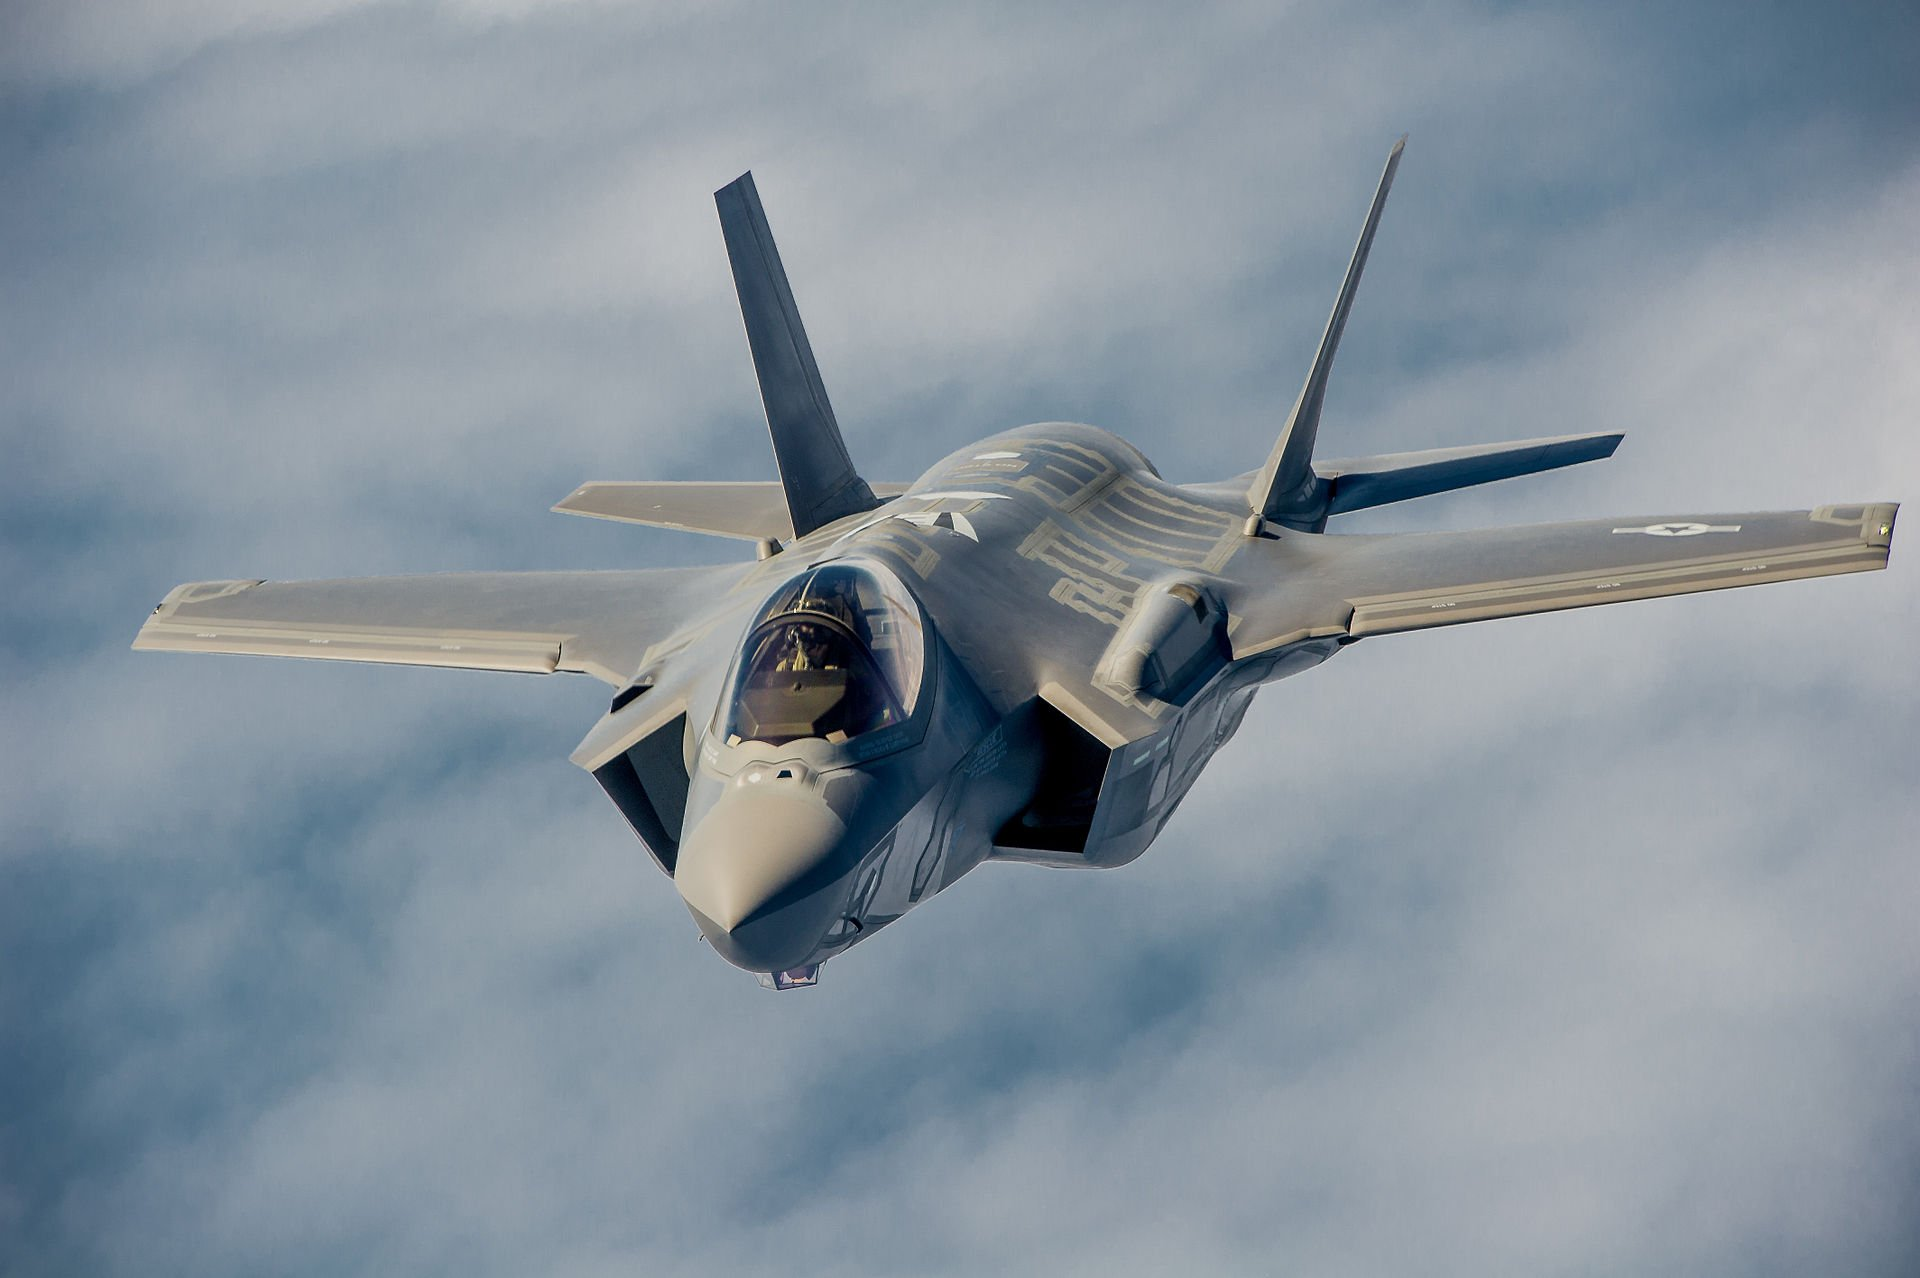 F-22 and F-35: How the Air Force Is Working to Stay Ahead of China's J-20 and Russia's PAK-FA